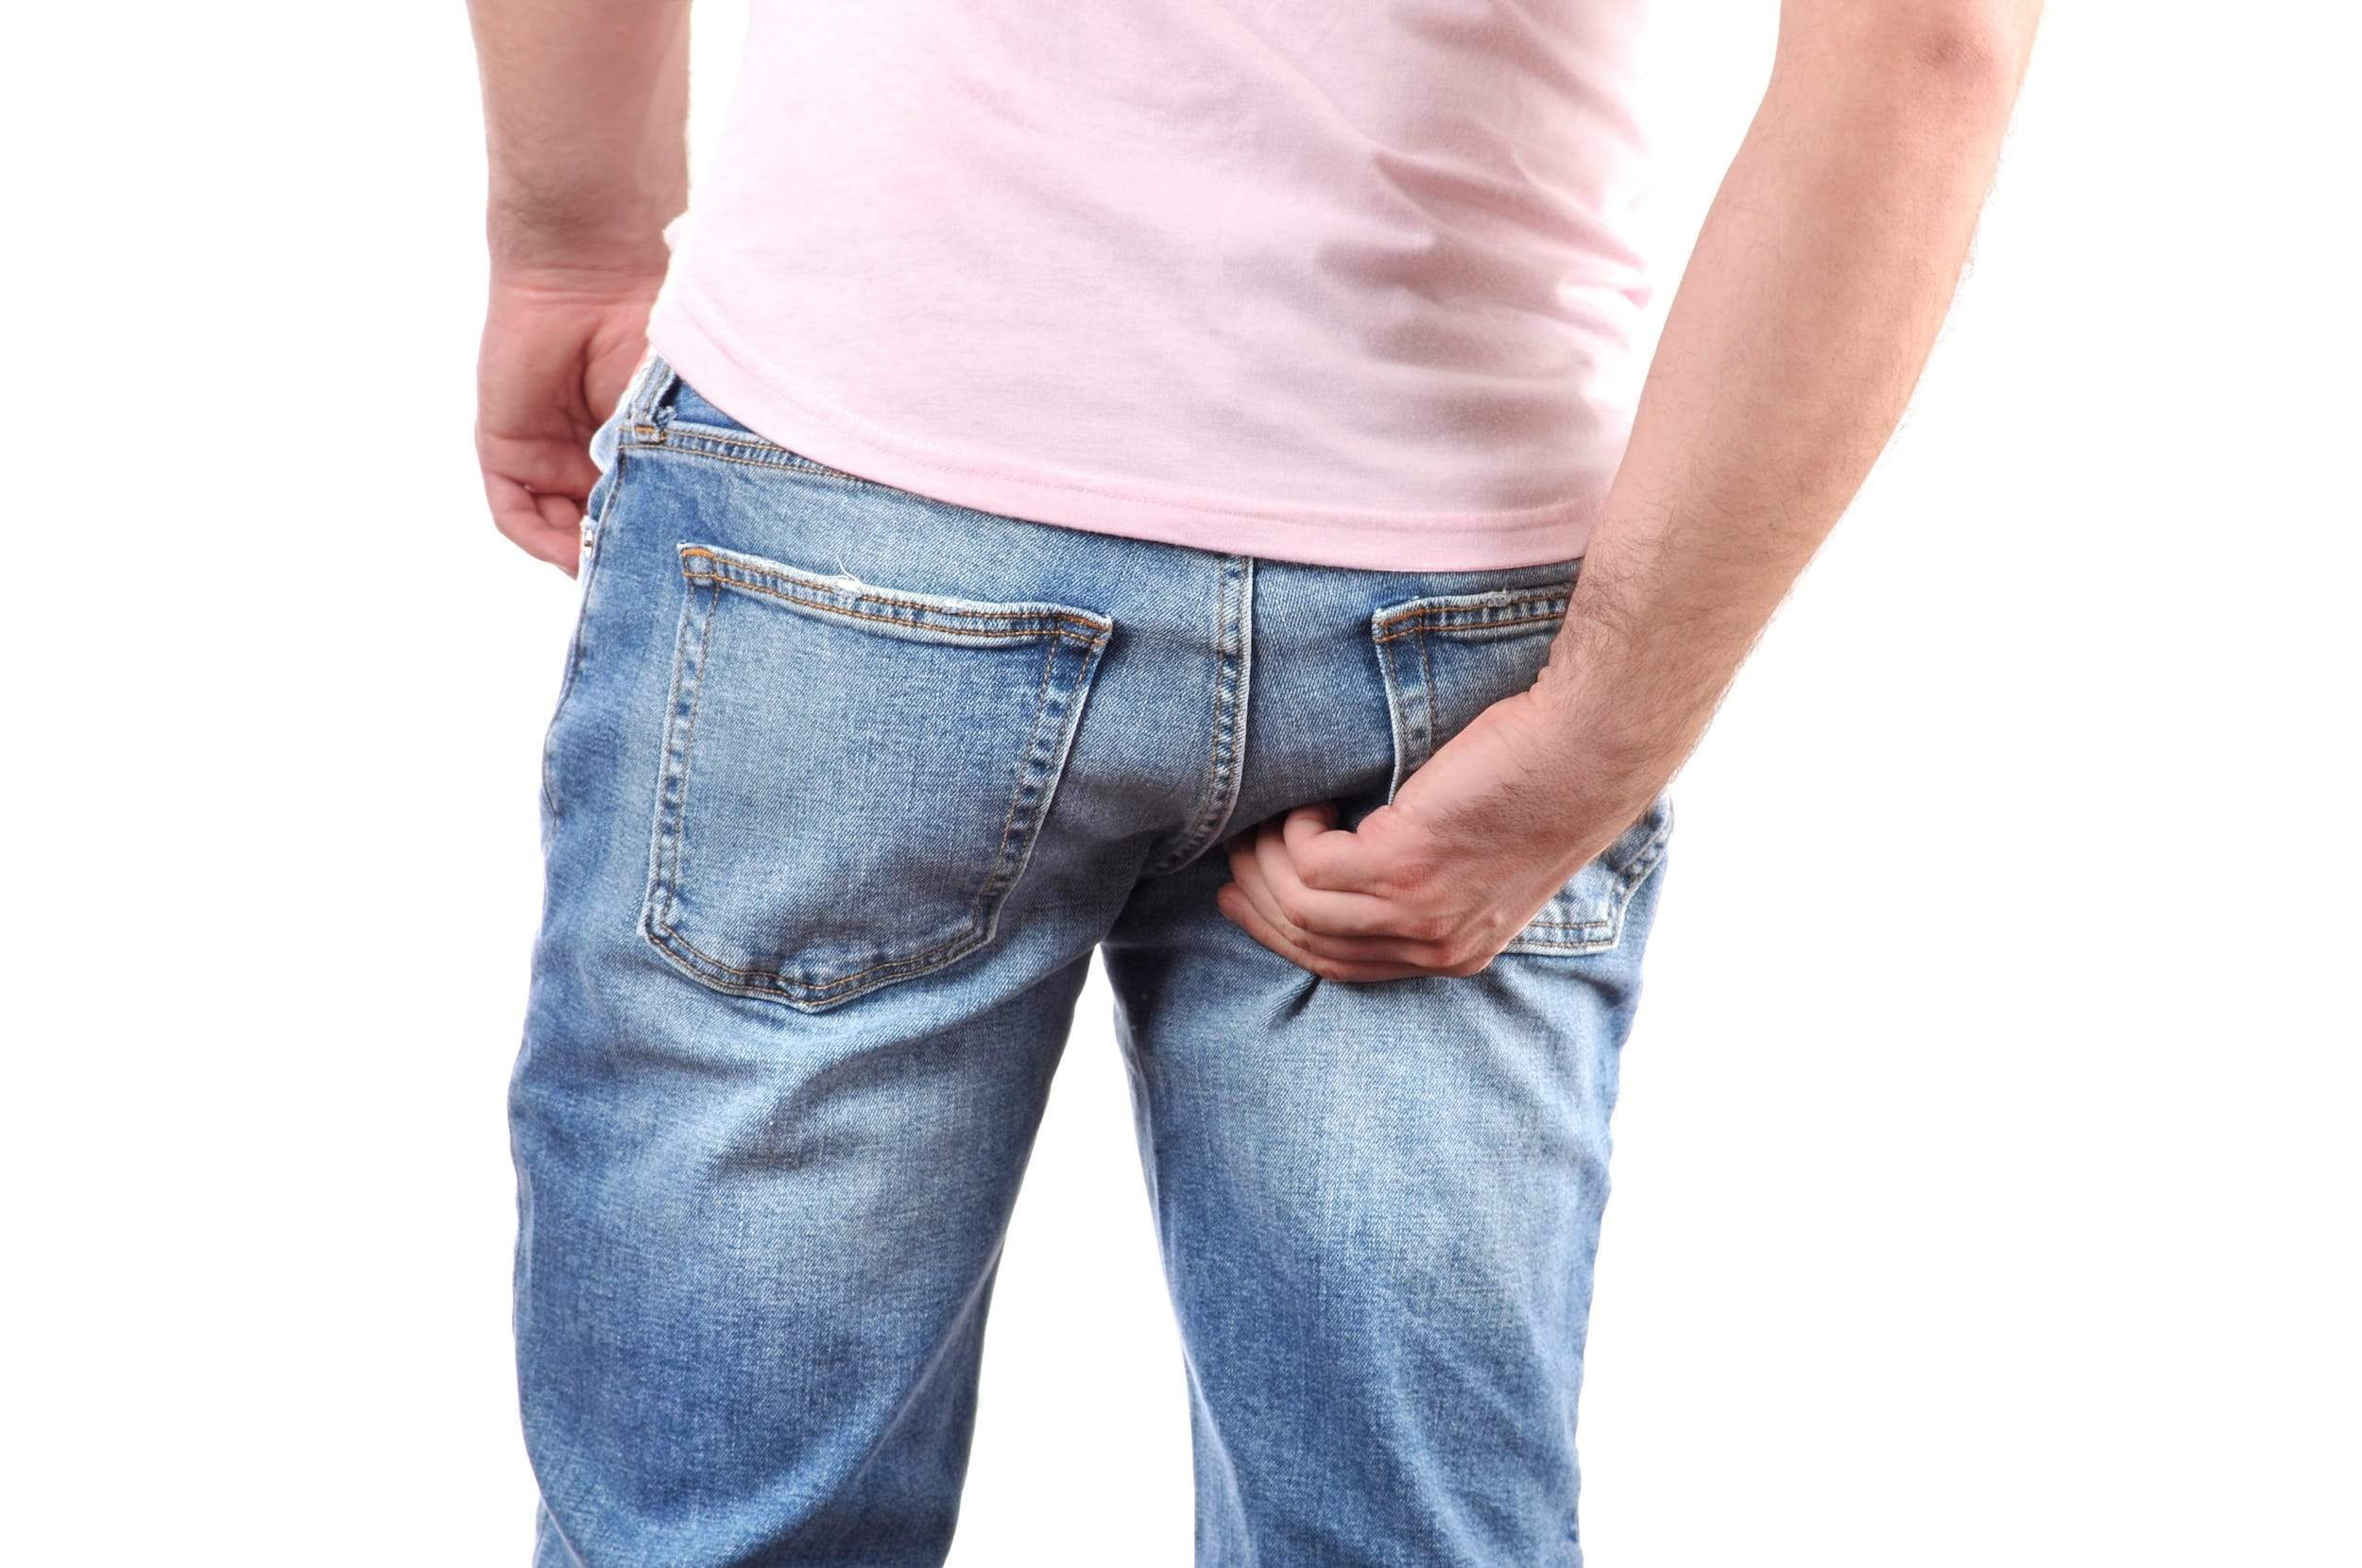 Butt Chafing Crack Between Buttocks Causes How To Prevent It